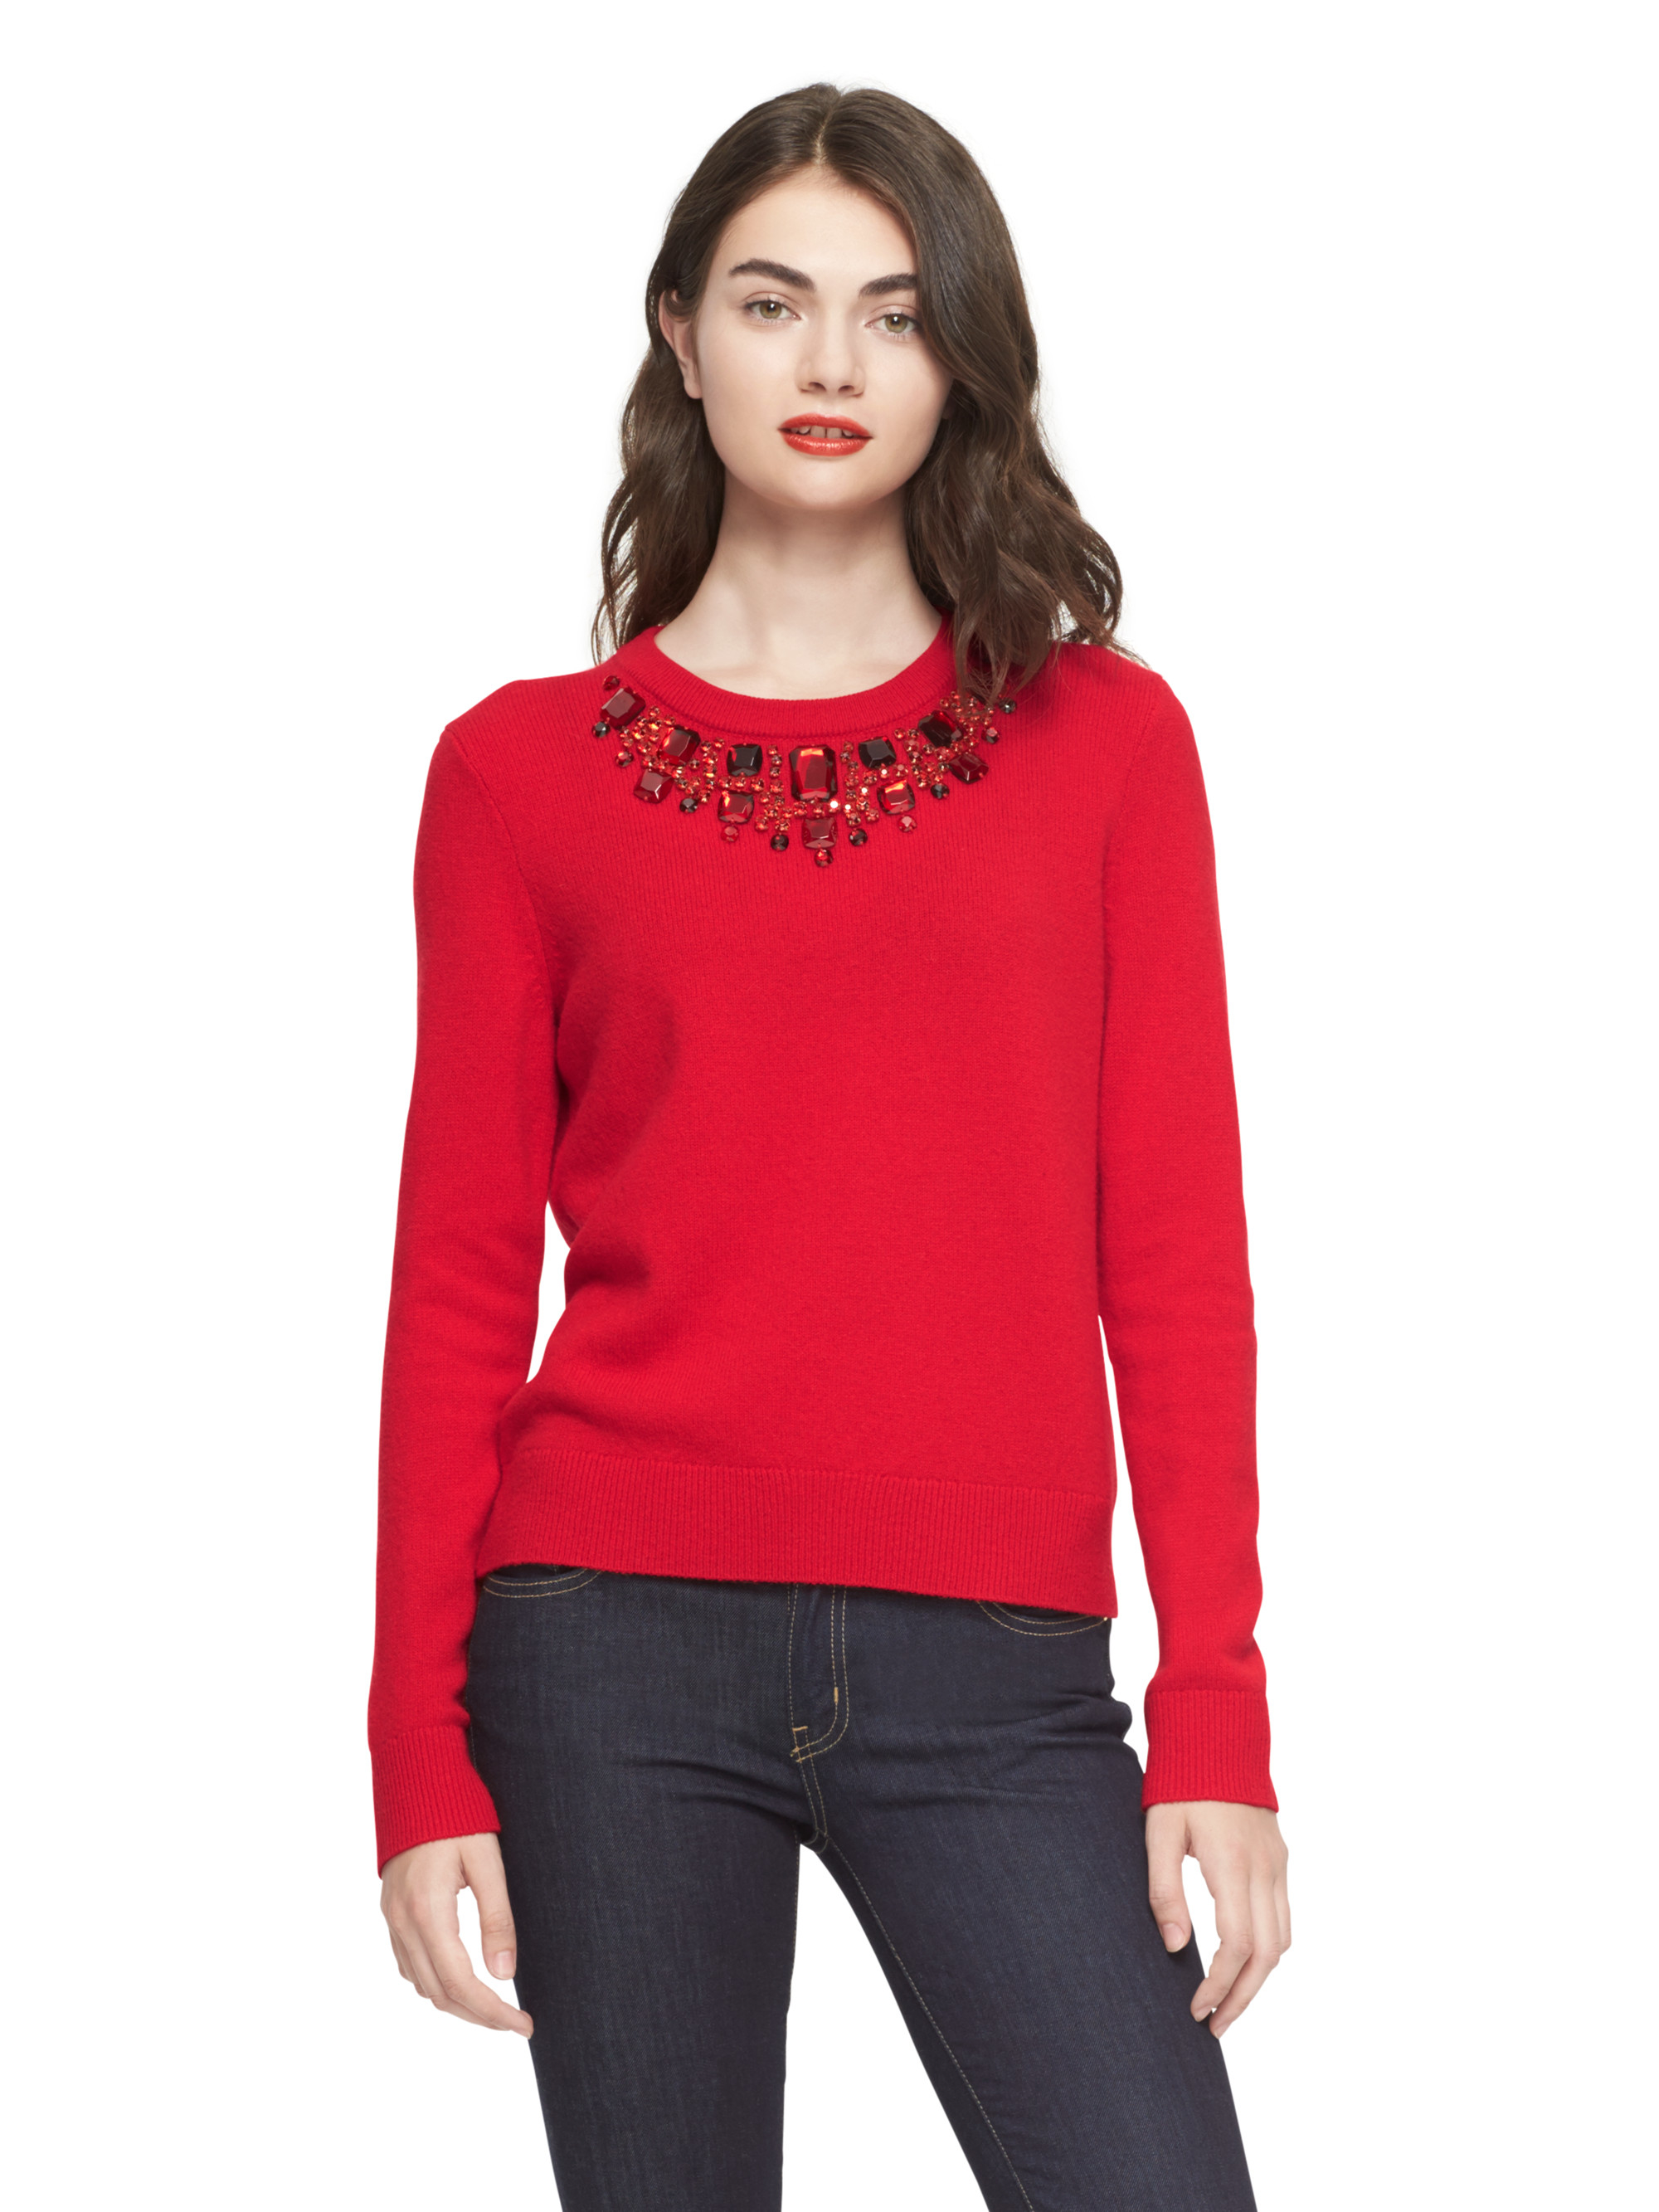 Kate spade new york Embellished Sweater in Red | Lyst